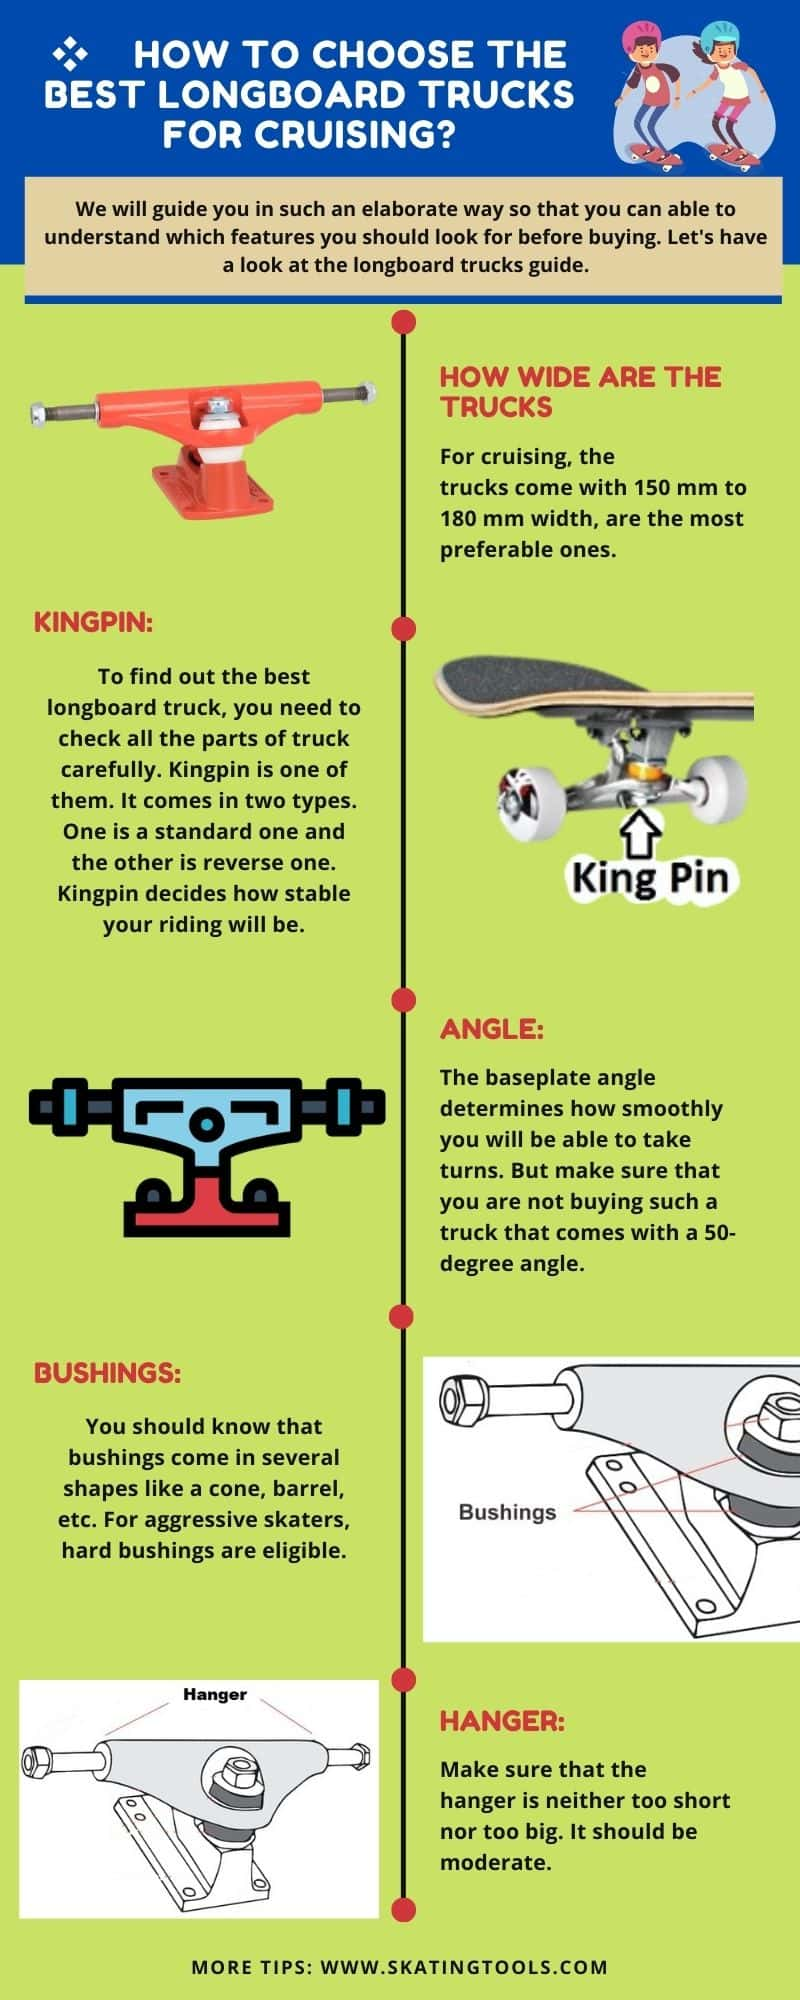 how to choose the best longboard trucks for cruising